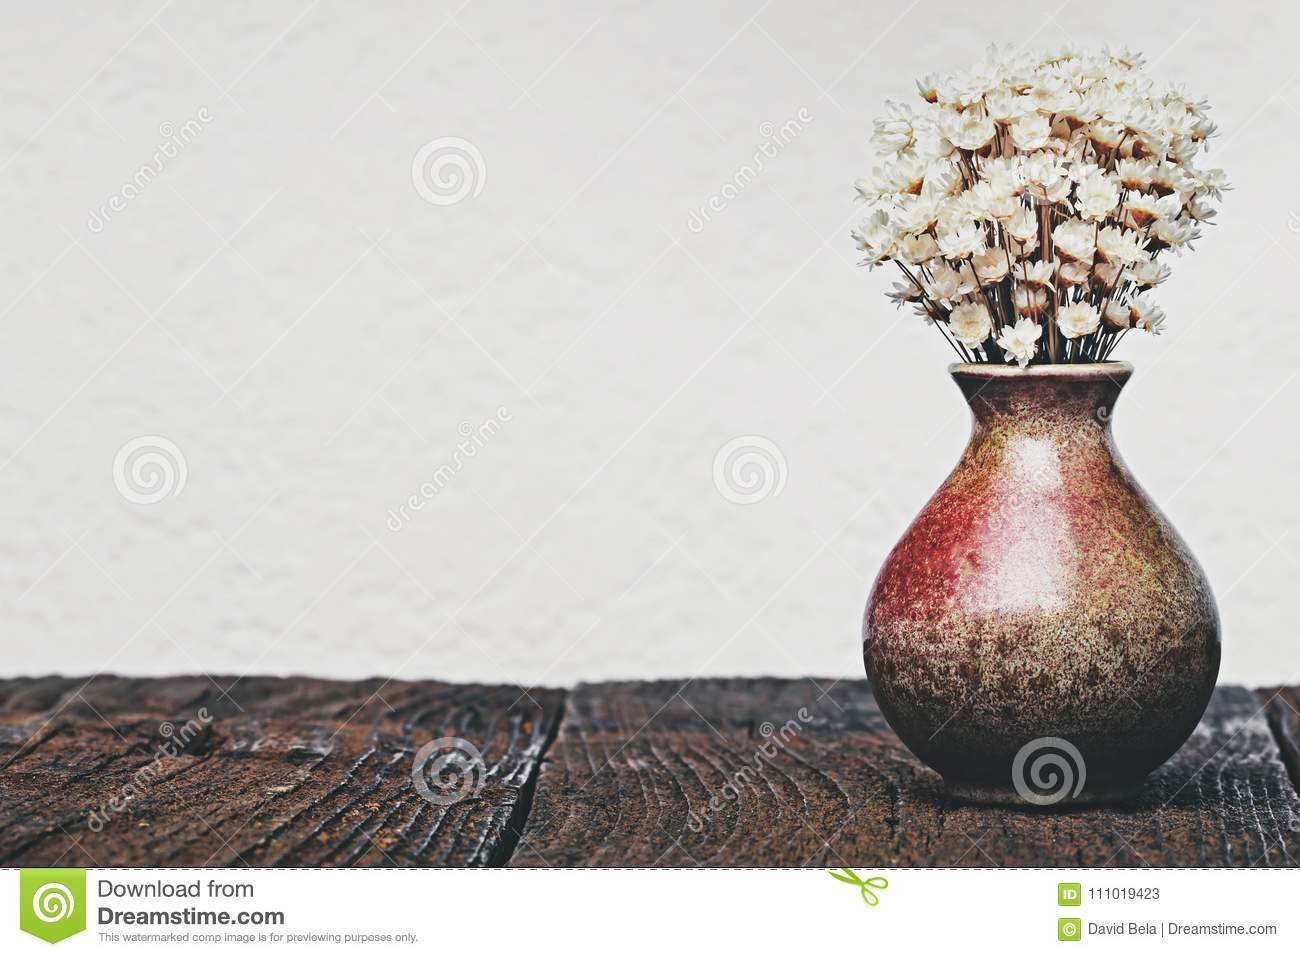 Dried flowers in the vase